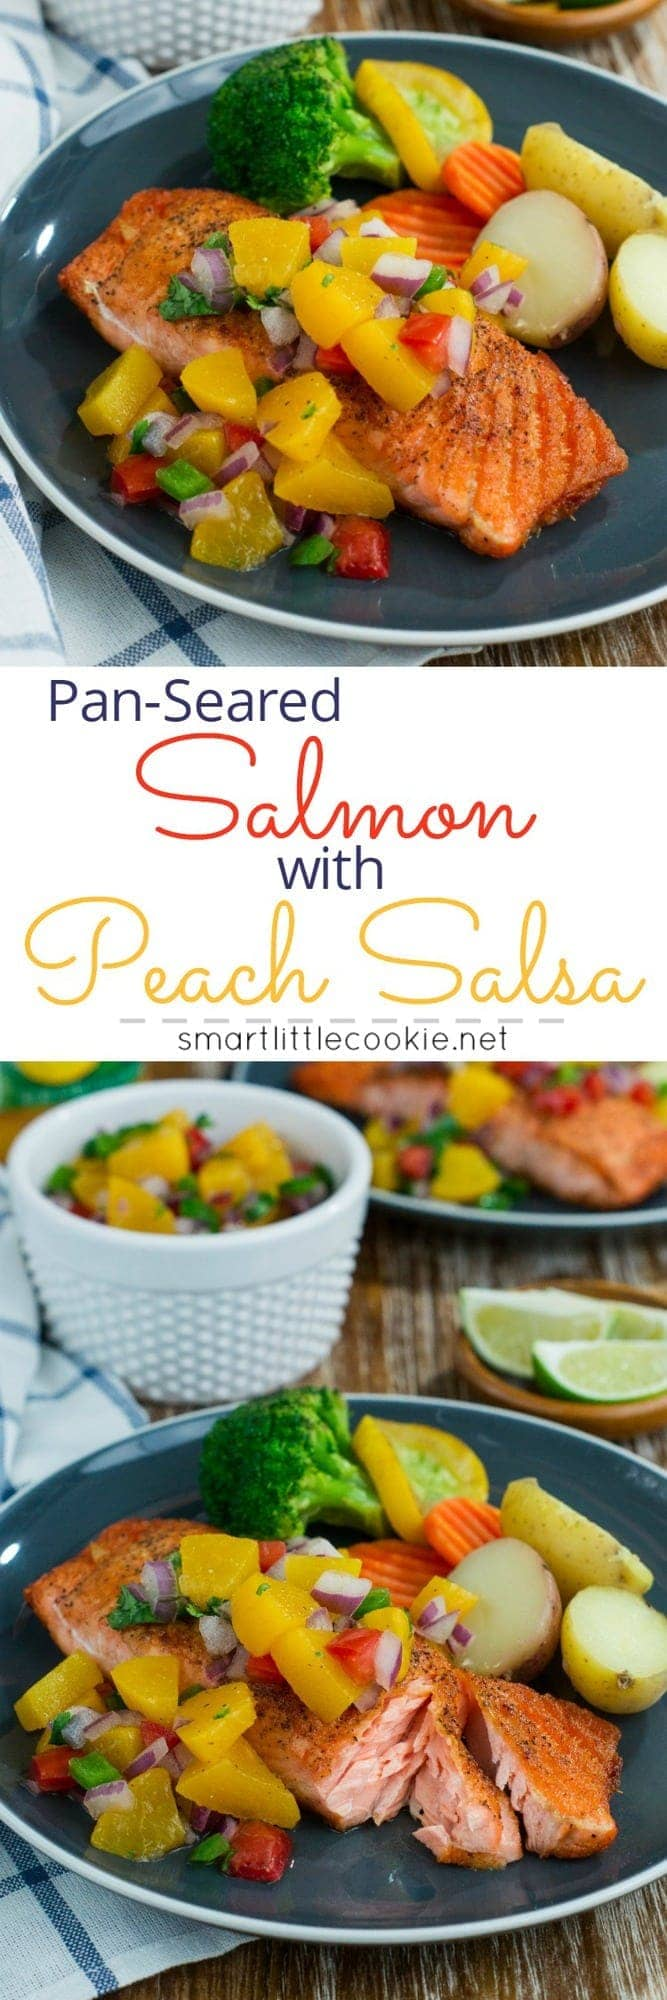 Make this quick, easy and absolutely delicious Pan-Seared Salmon with Peach Salsa and have dinner on the table in 20 minutes or less! #easyrecipe #VidaDole #ad www.mydominicankitchen.com